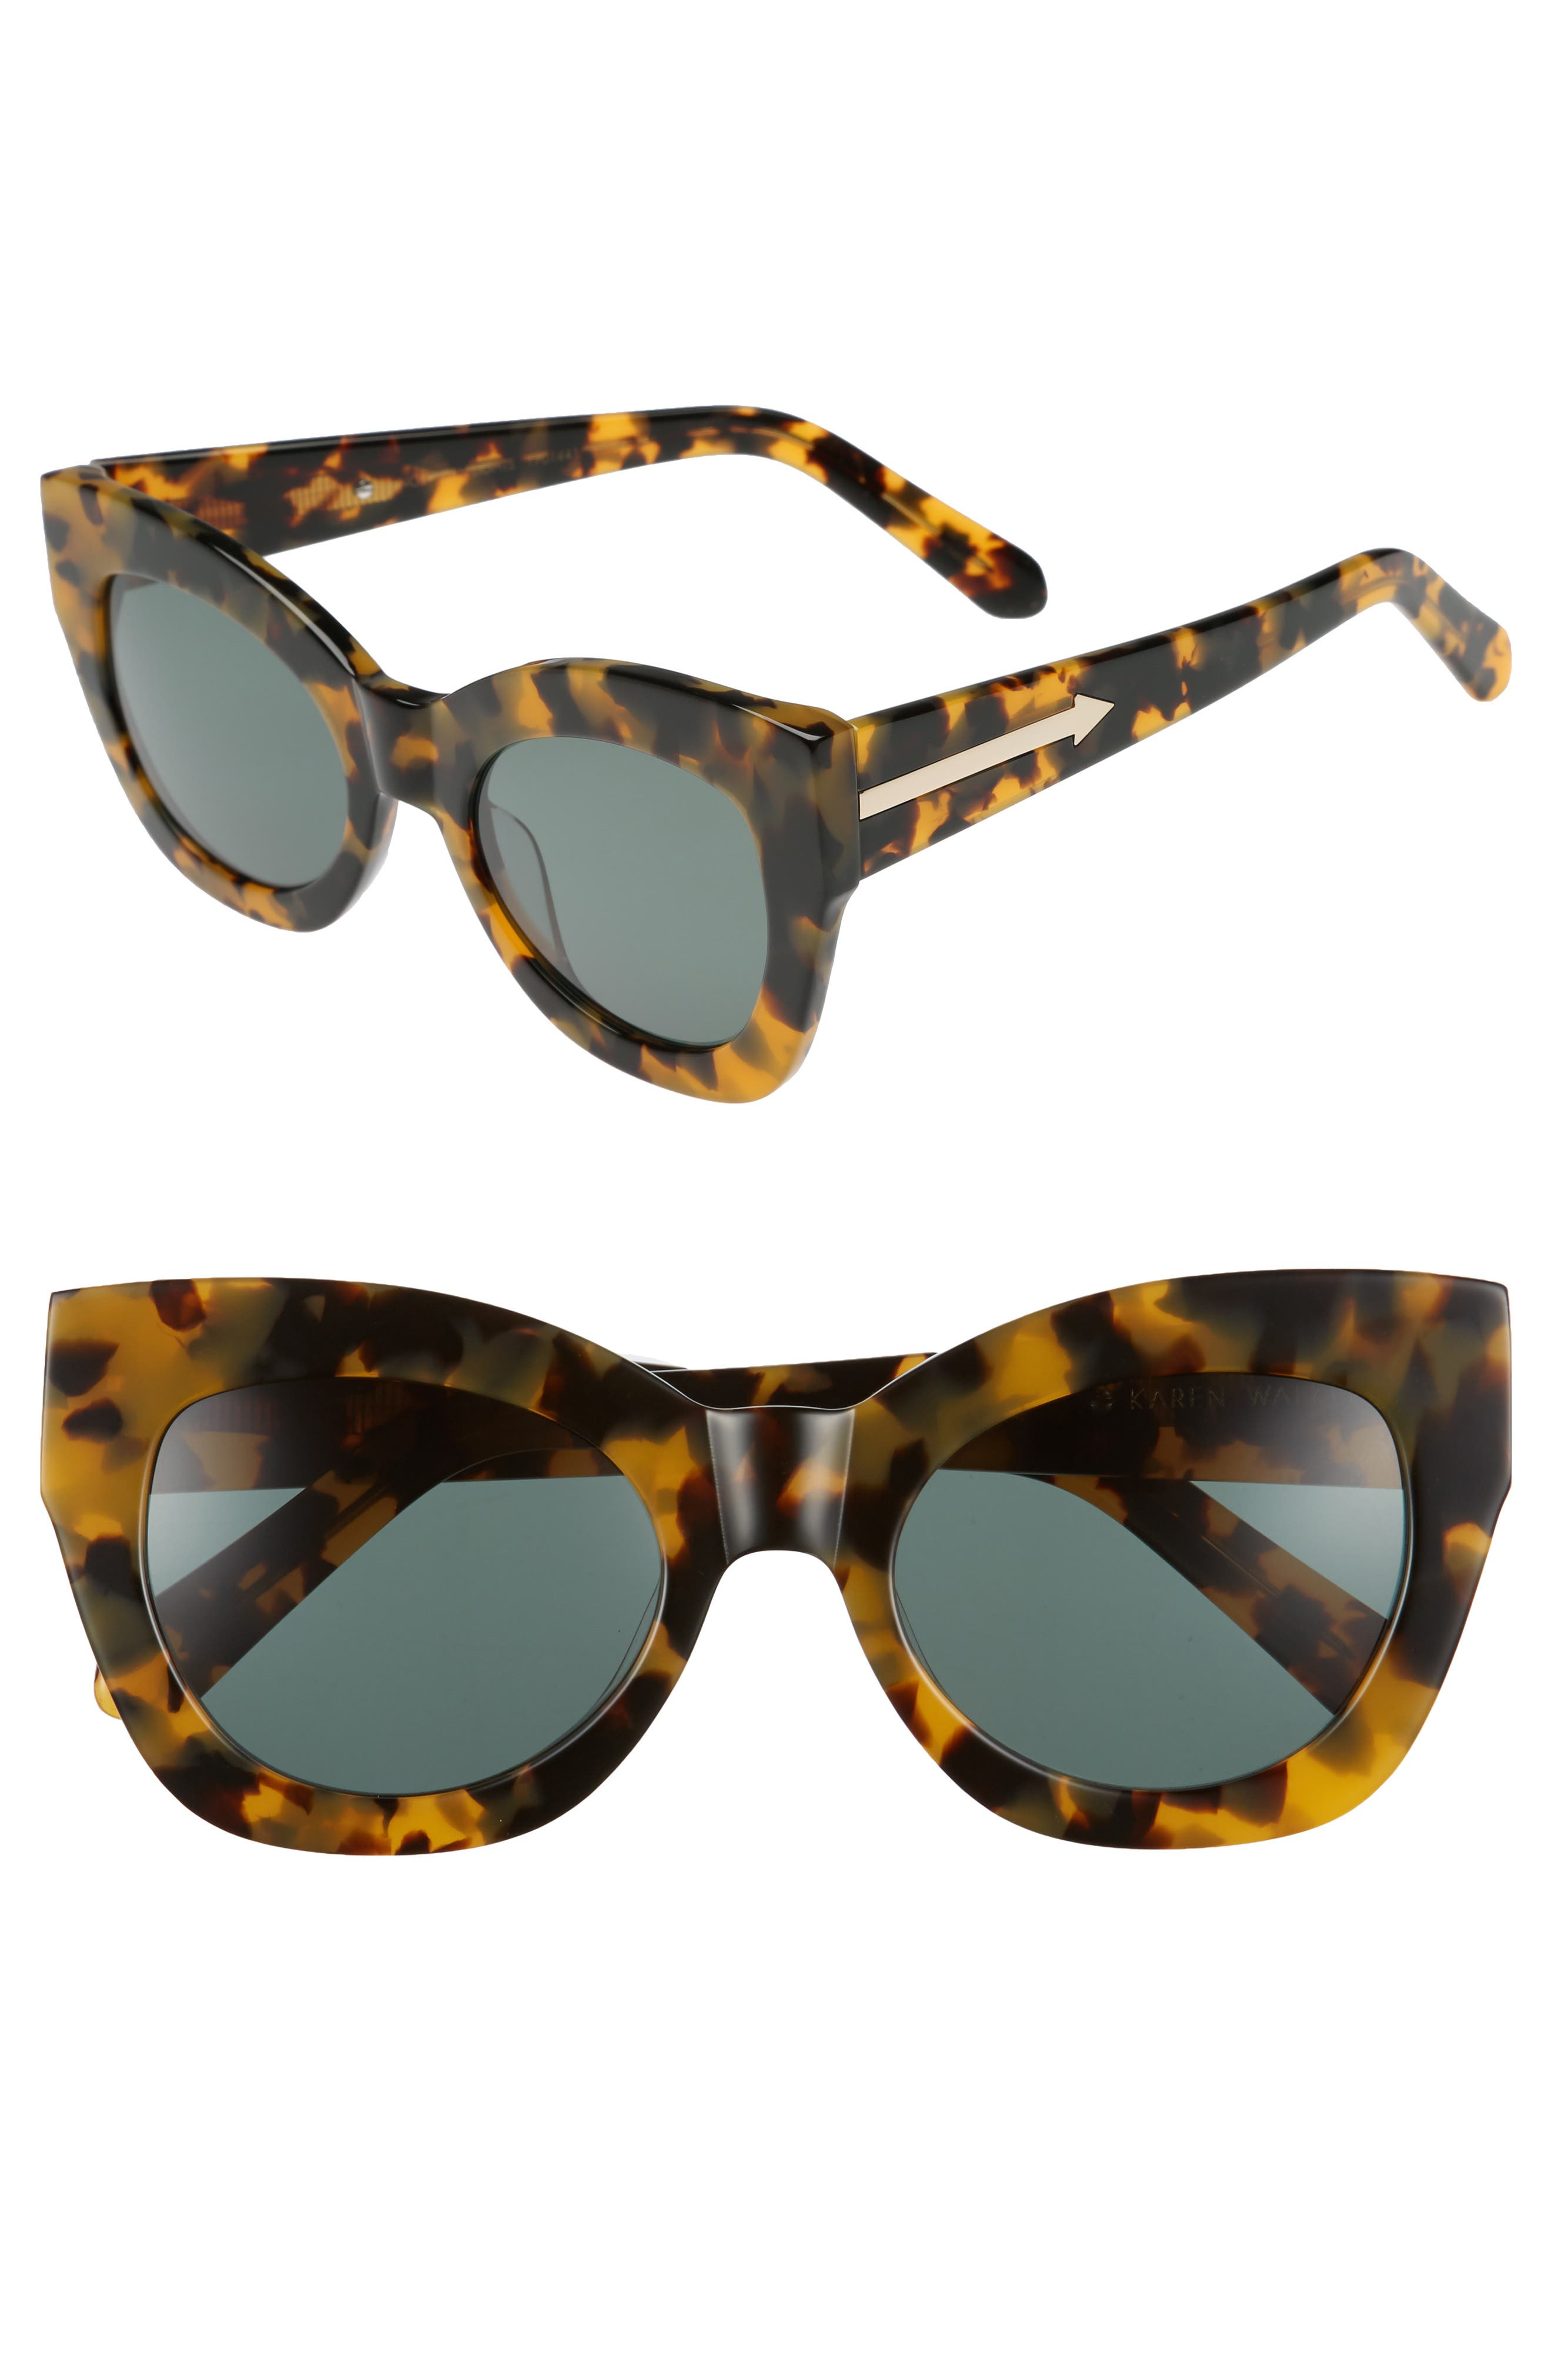 Northern Lights V2 51mm Cat Eye Sunglasses,                             Main thumbnail 1, color,                             CRAZY TORTOISE